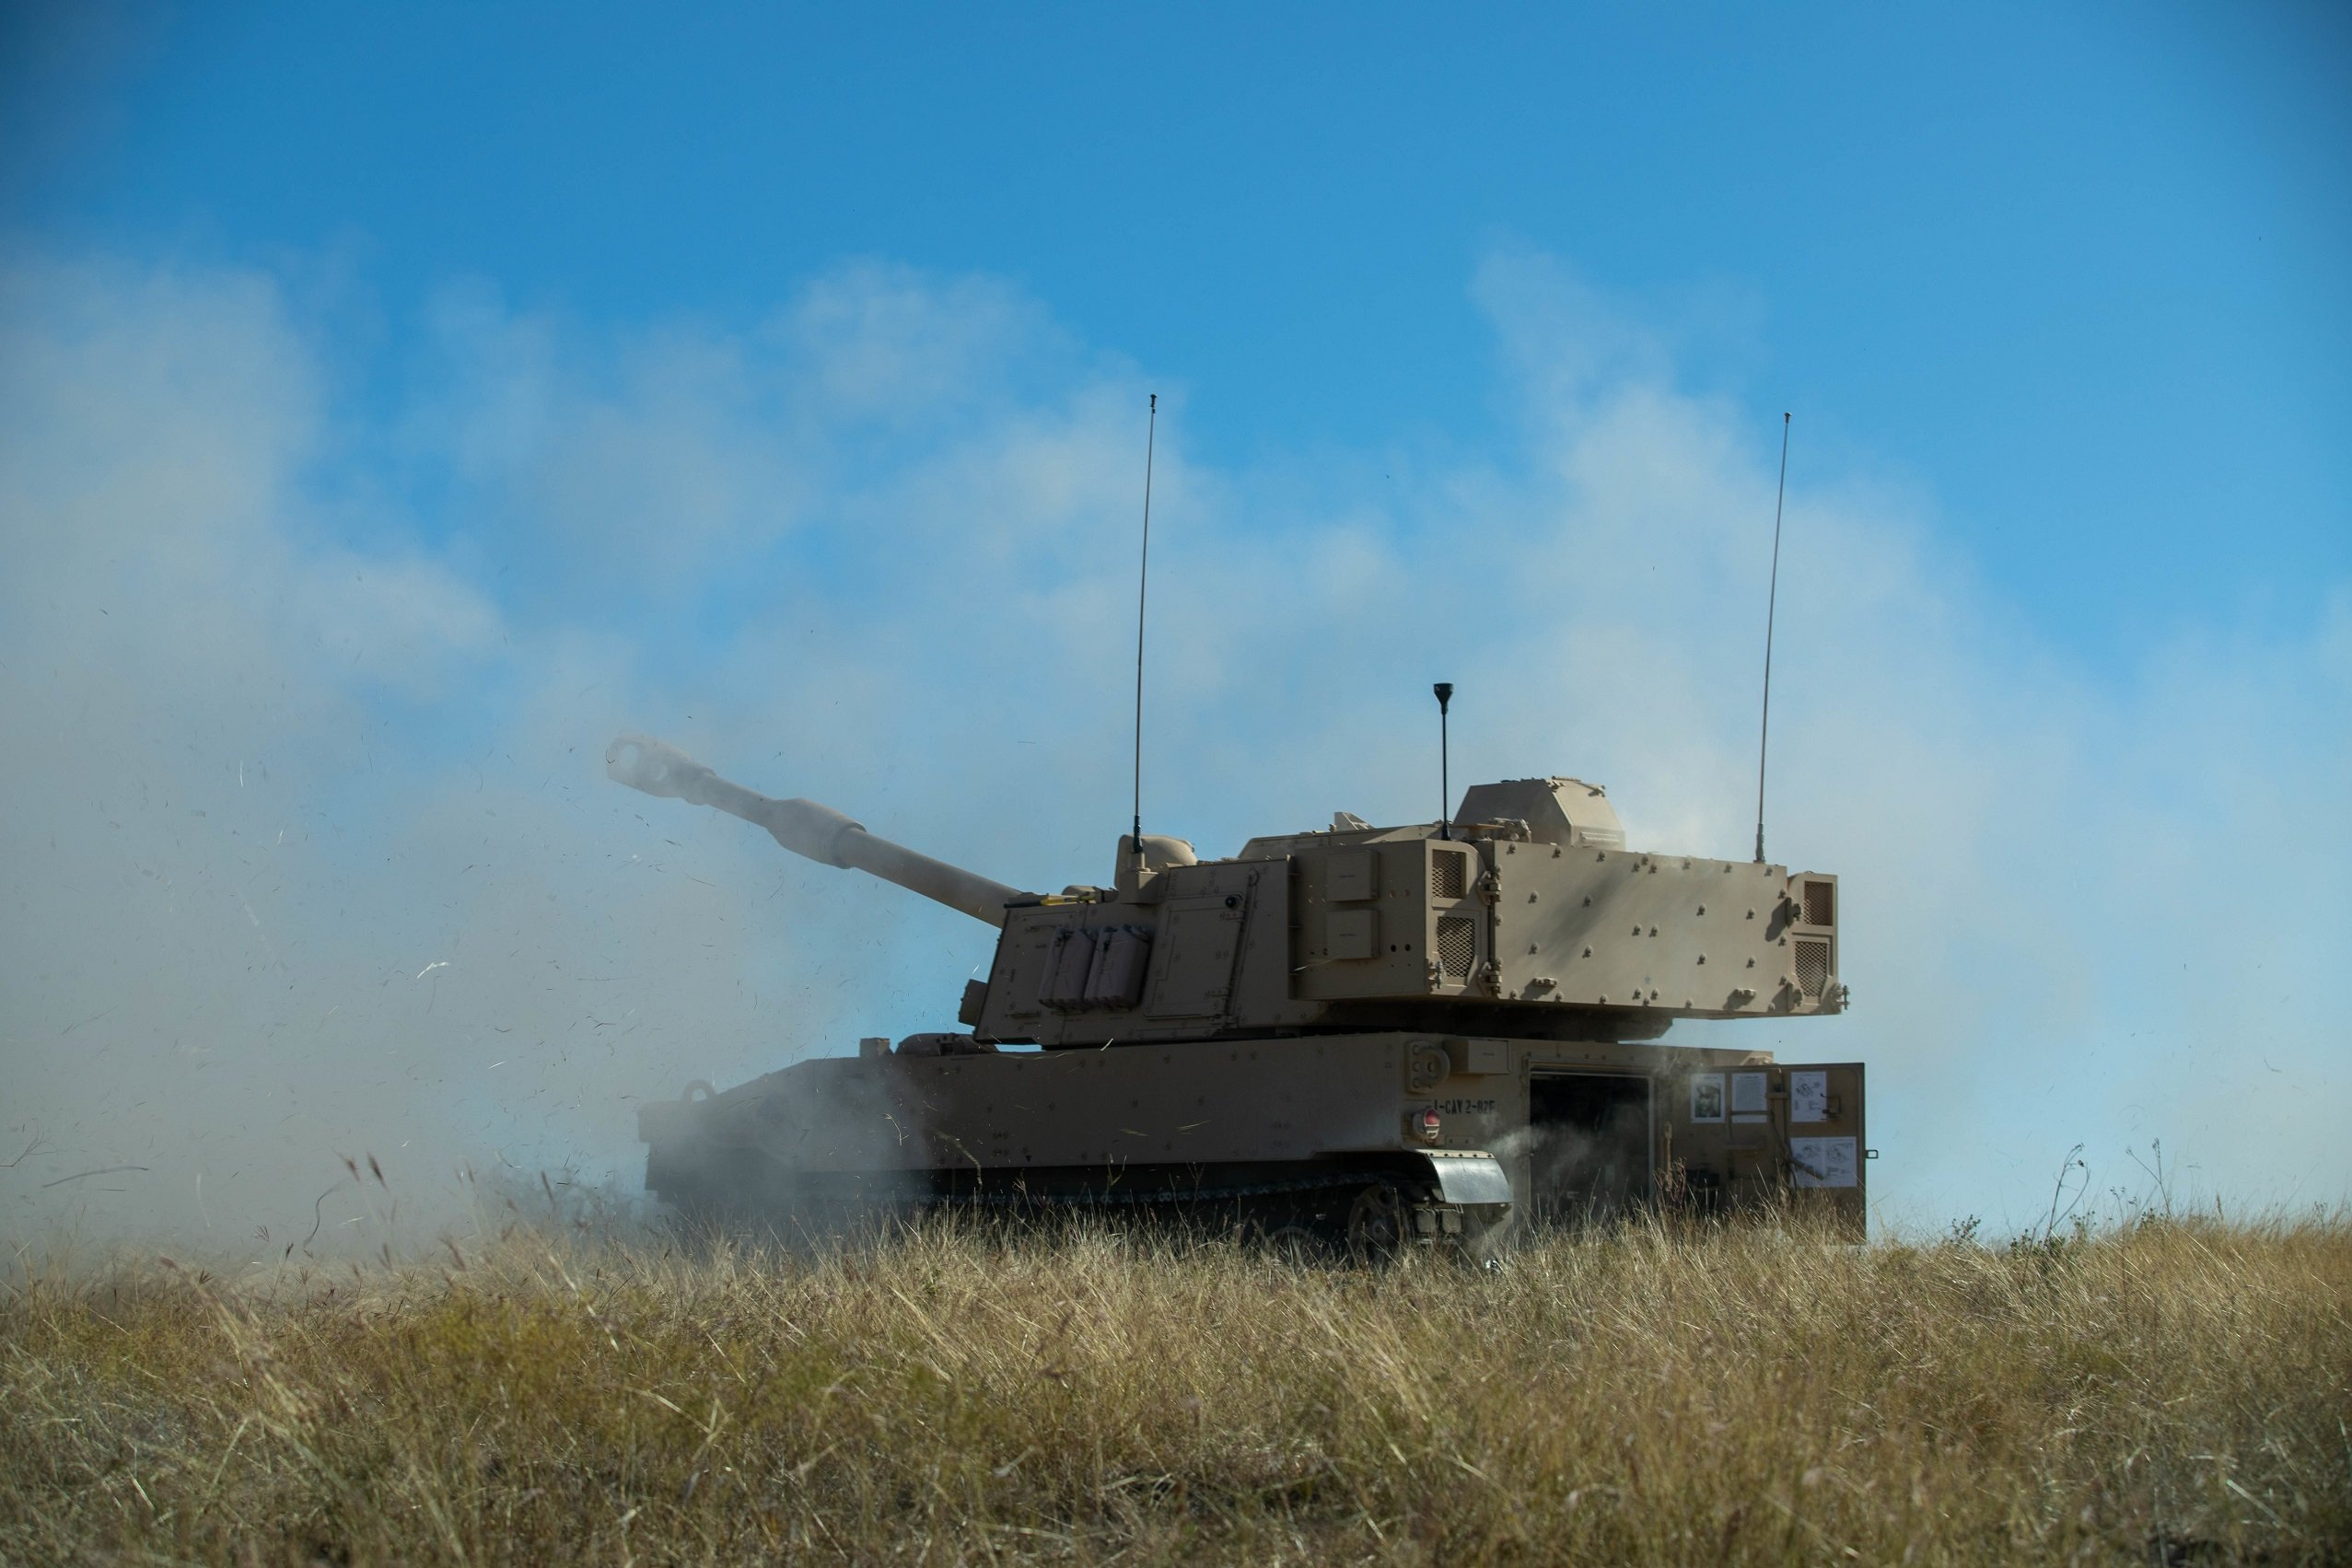 U.S. Army hosts live-fire demonstration of newly received M109A7 Paladins